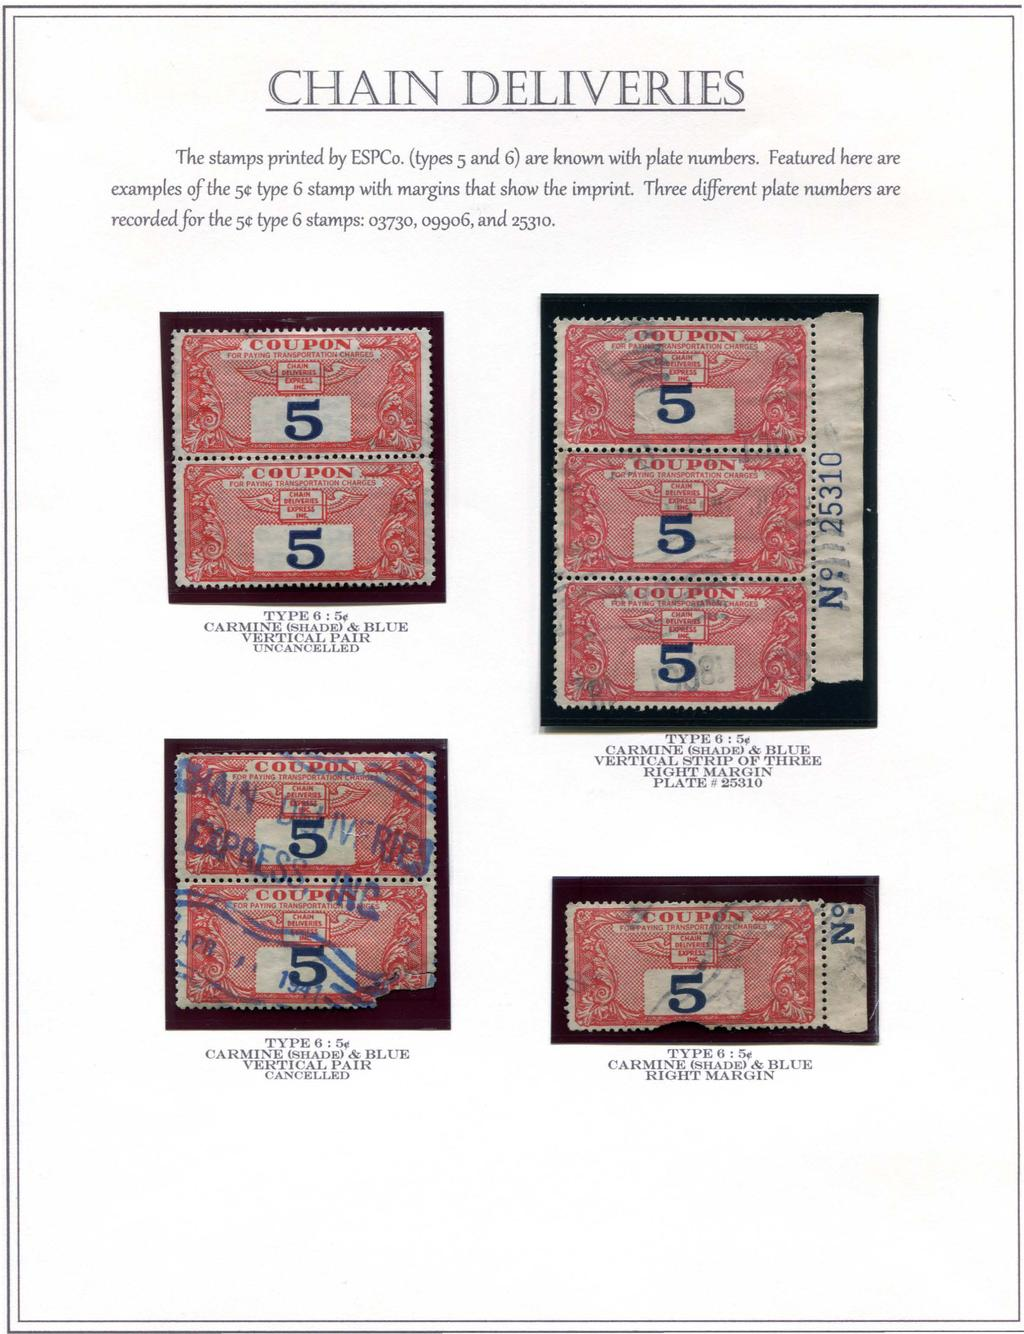 The stamps printed by ESPCo. (types 5 and 6) are known with plate numbers. Featu.